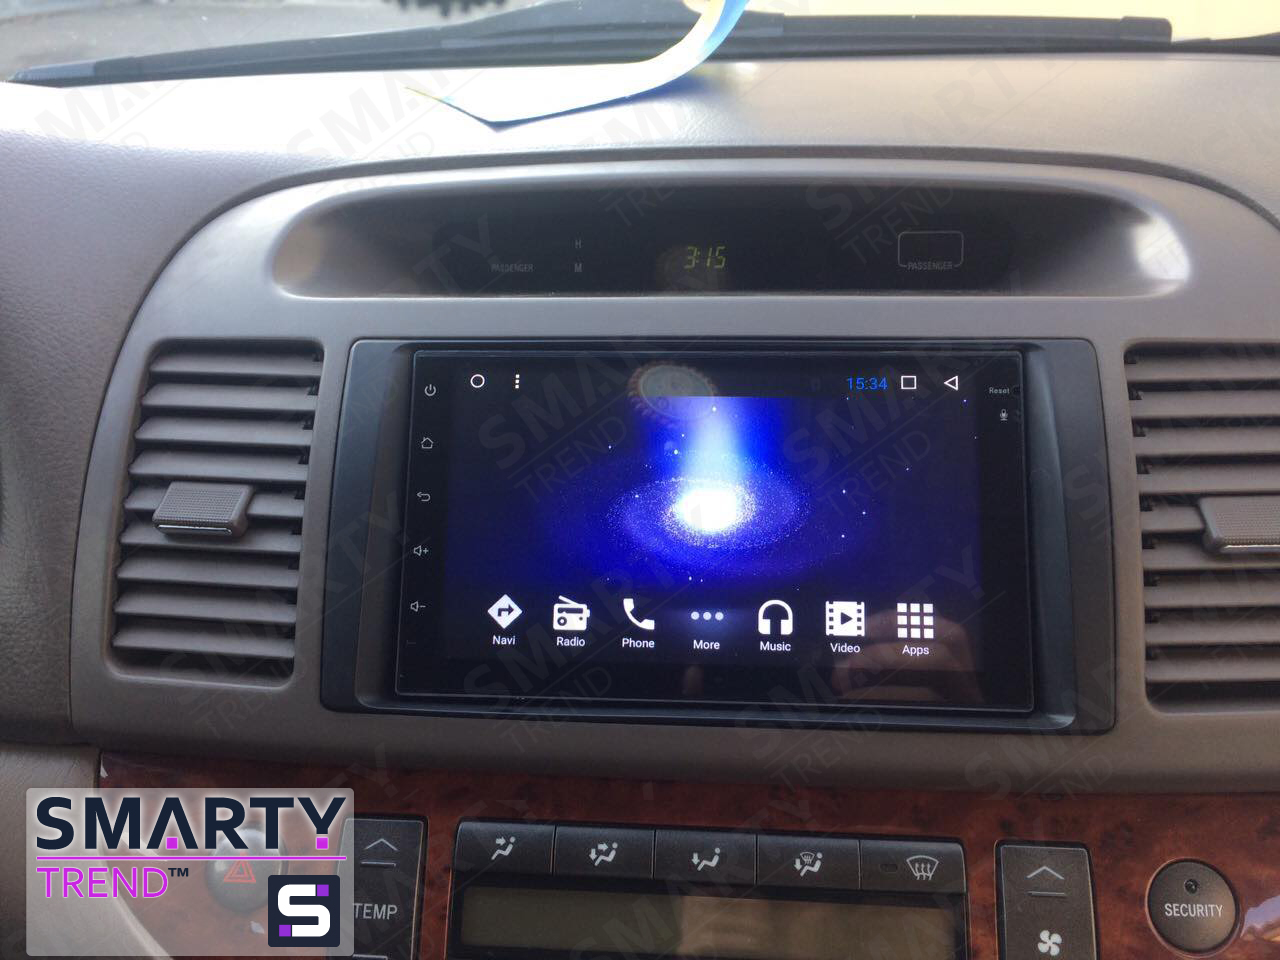 SMARTY Trend head unit for Toyota Camry V30